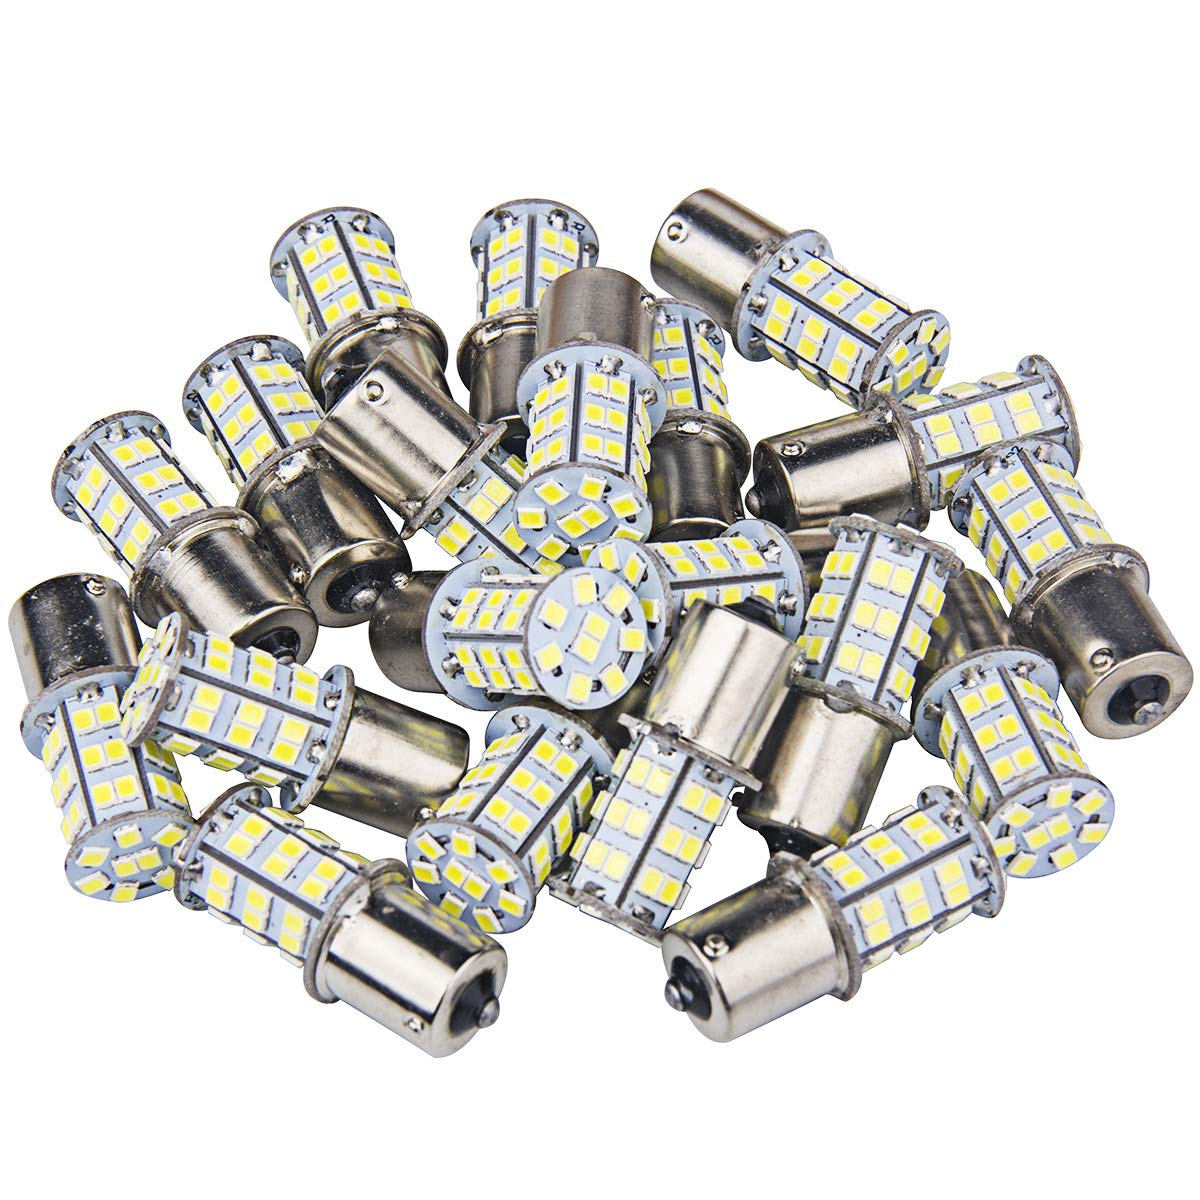 20 Pcs Extremely Bright 1156 1141 1003 1073 7506 BA15S LED Replacement Light Bulbs for Tail Backup Reverse Lights RV Indoor Lights 6000K Xenon White(12V DC) 71gh93drLqL